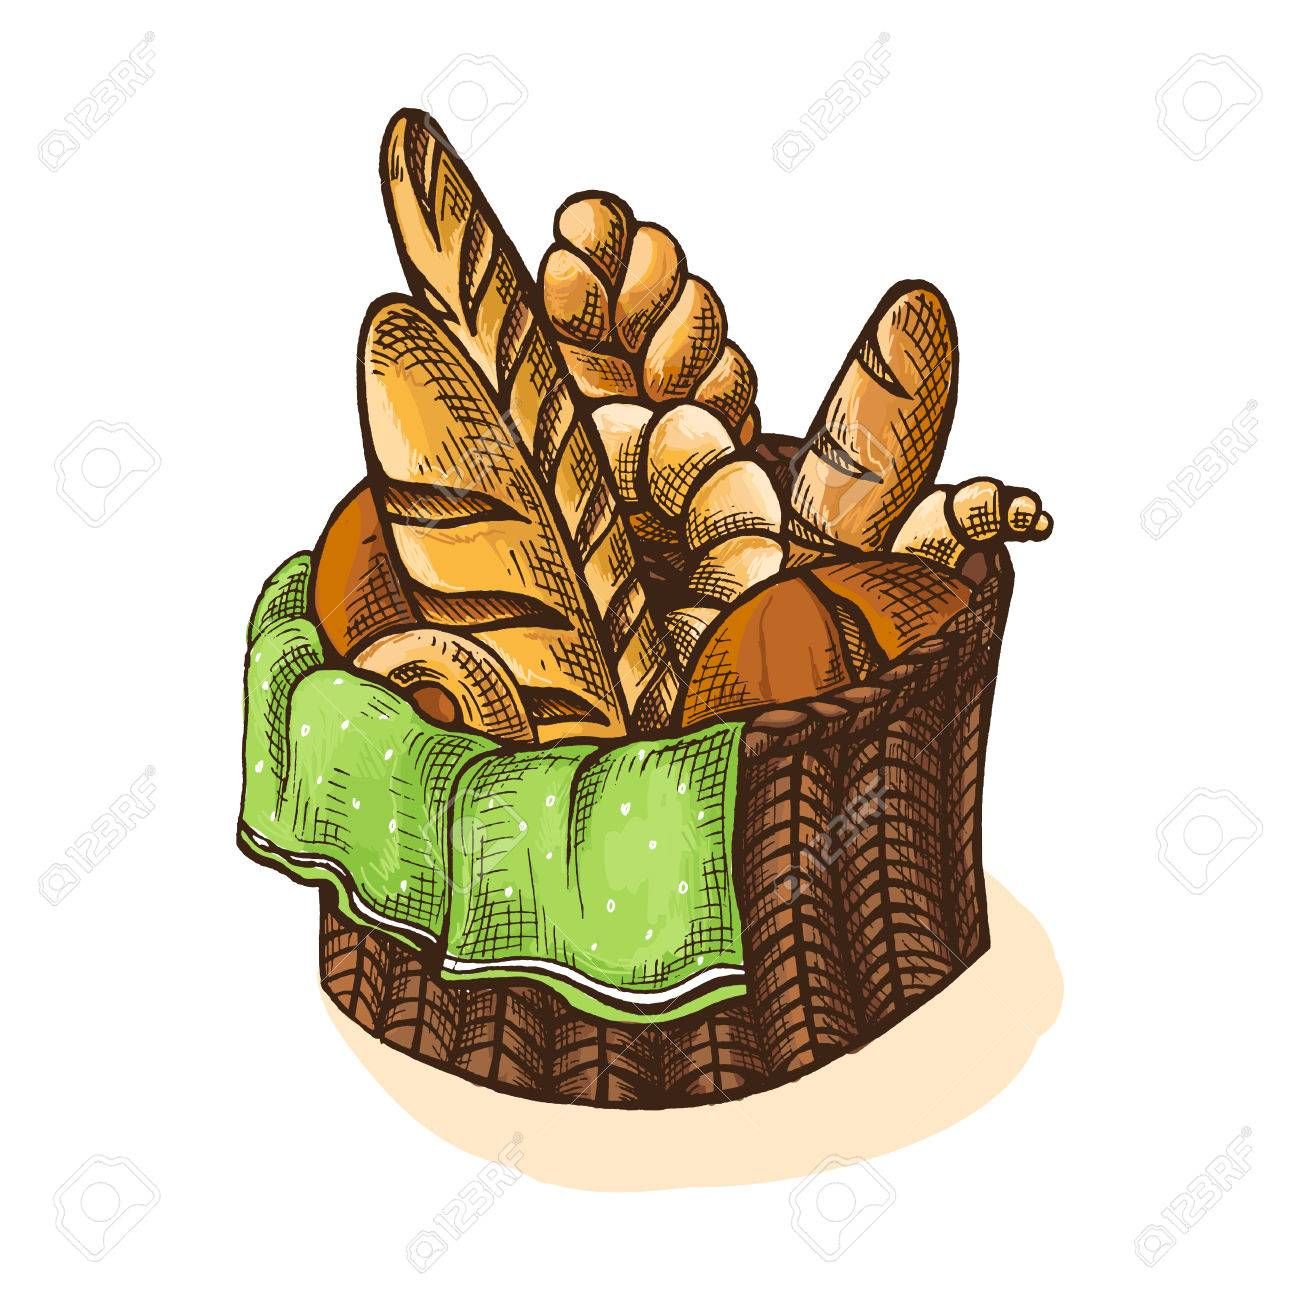 Watercolor Fresh Bread Basket in graphic style.